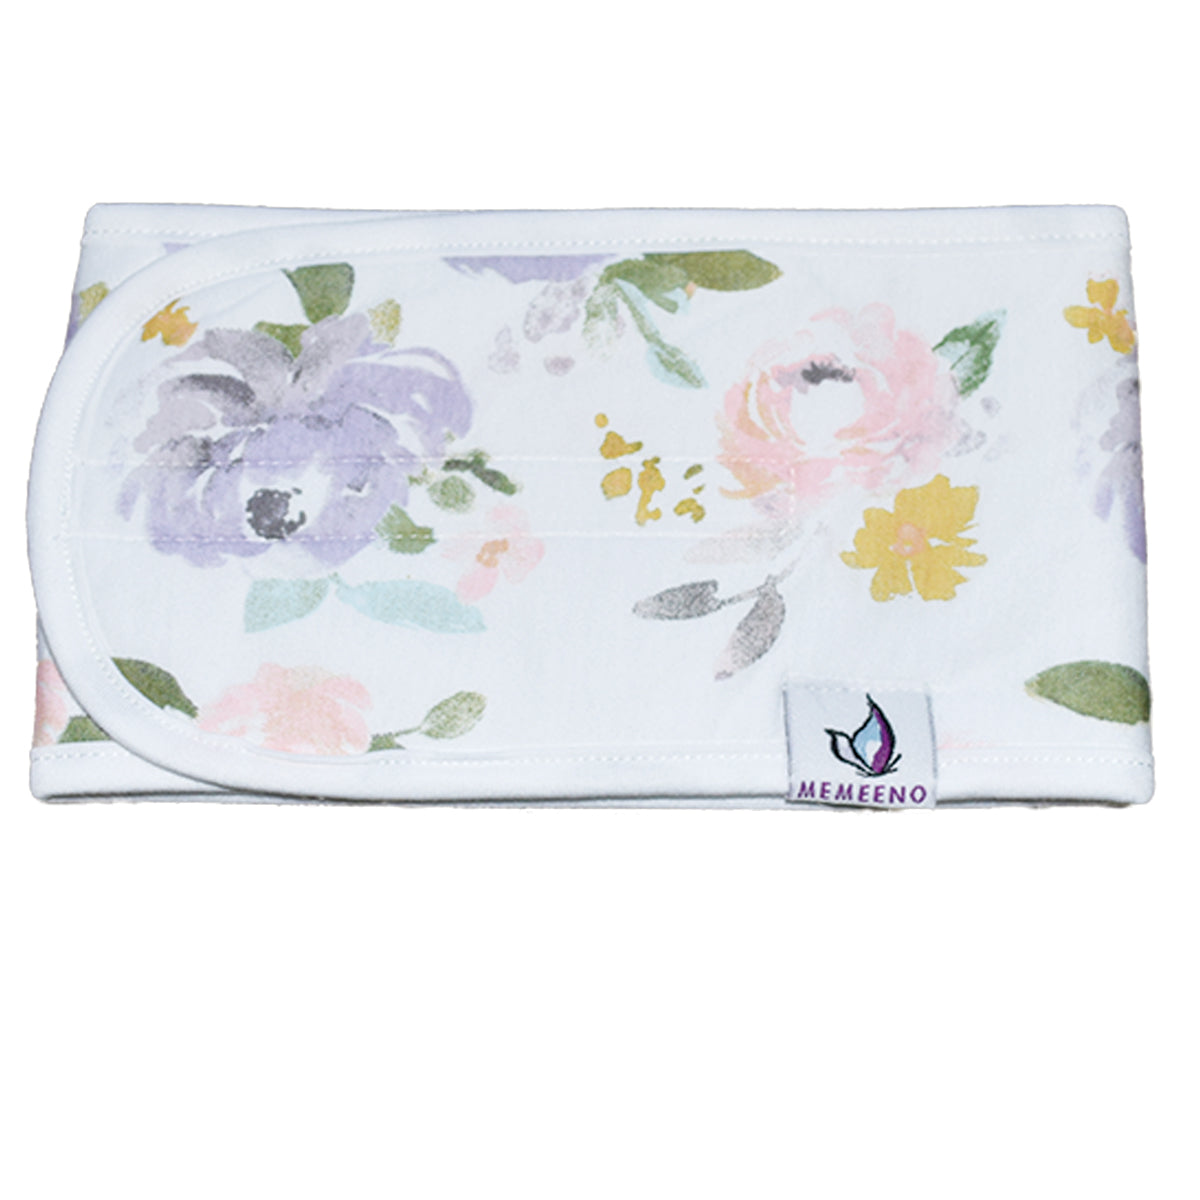 product photo of organic cotton baby belly band darling, with florals